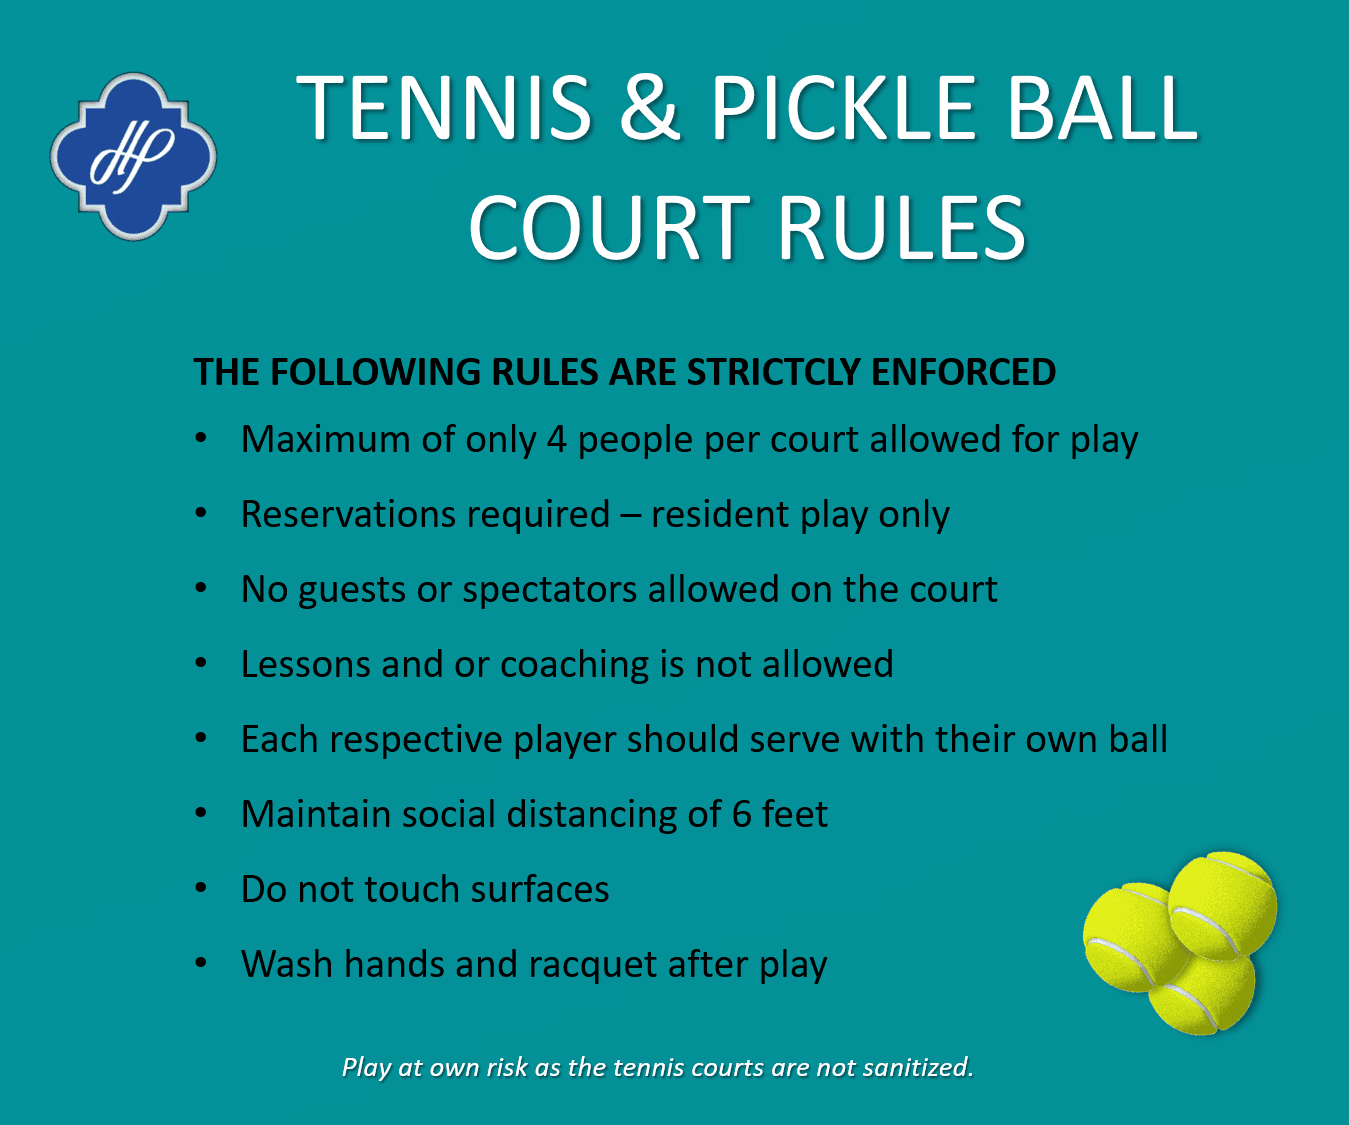 tennis court rules post covid19